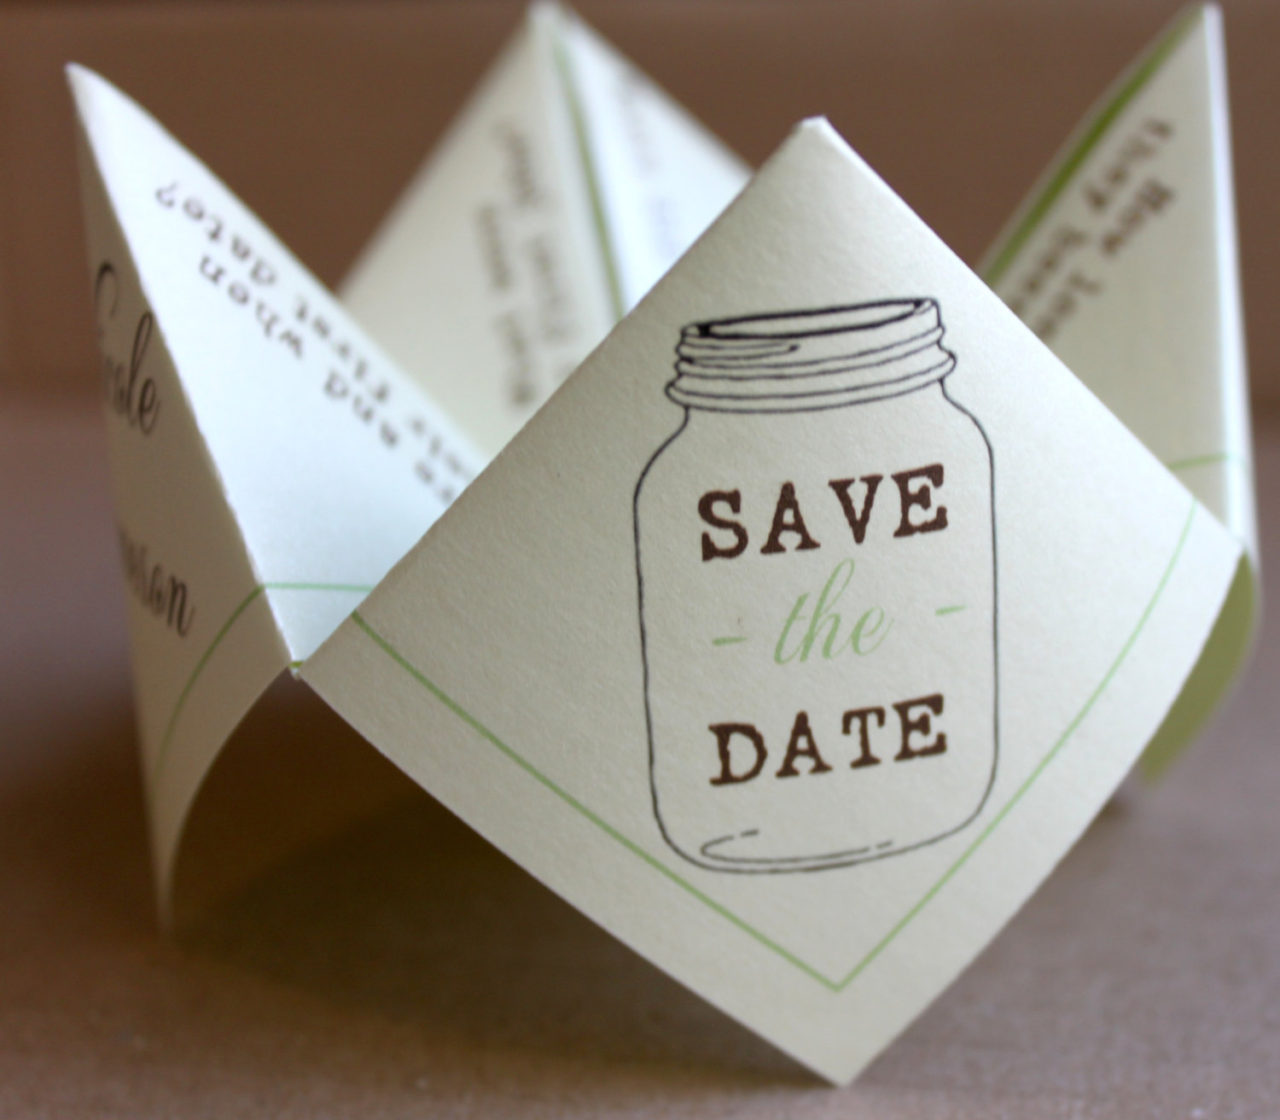 15 brilliantly creative save the date ideas weddingsonline cootie catcher save the date mason junglespirit Gallery